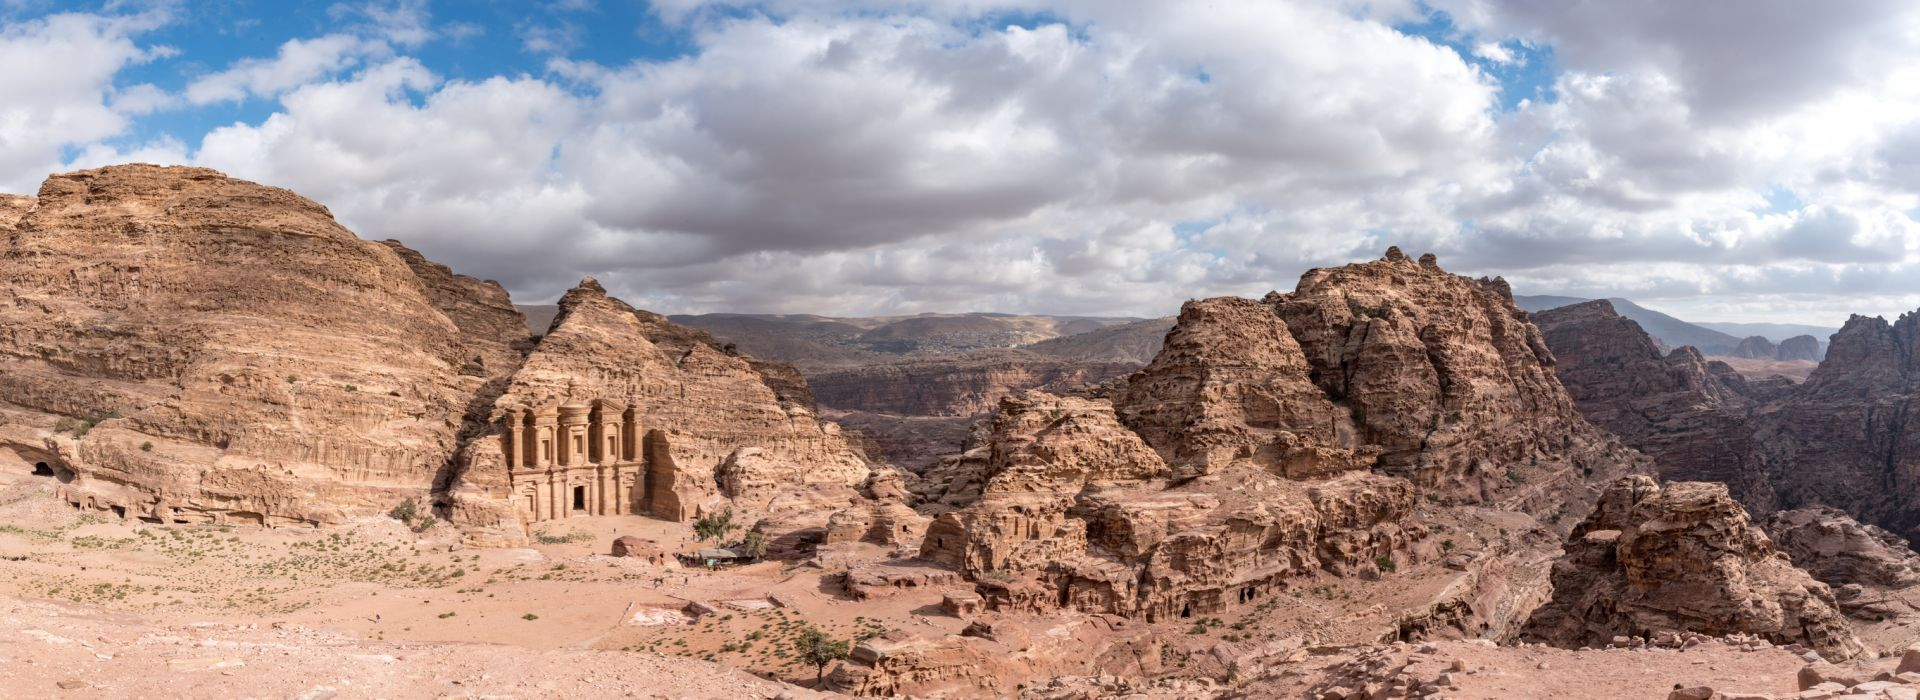 Wildlife, landscapes and nature Tours in Jordan